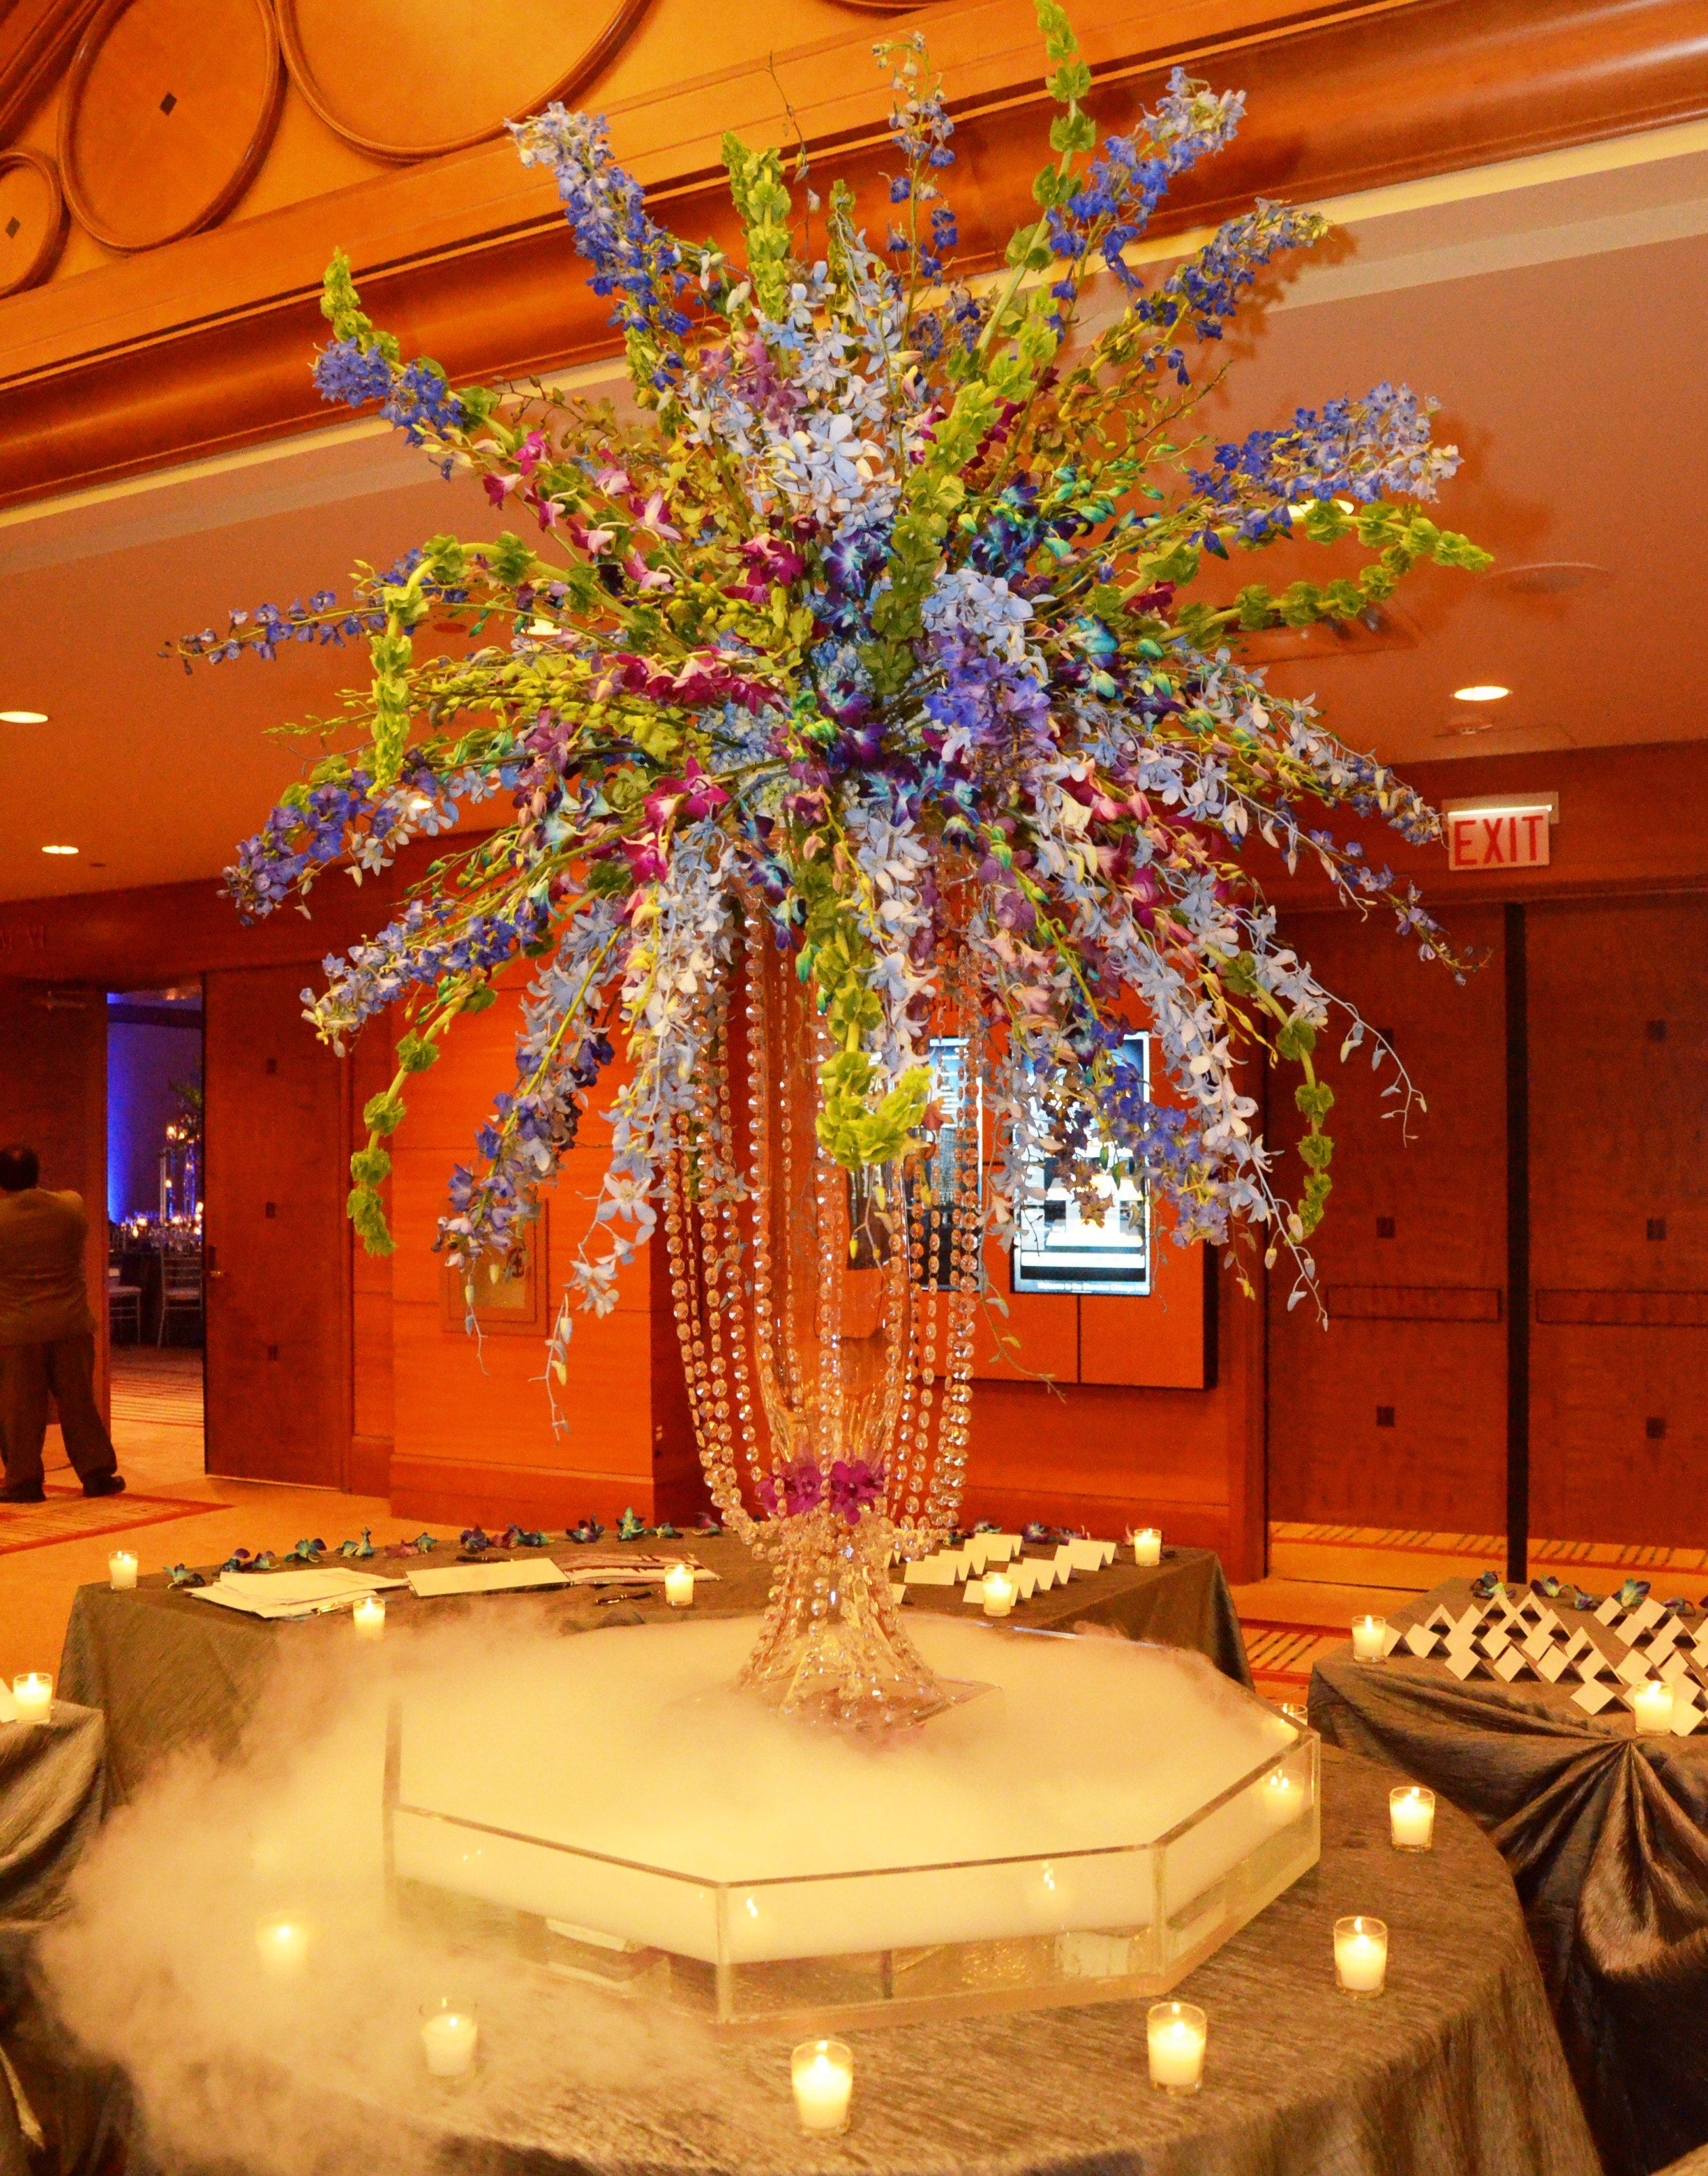 Tropical Orchid Centerpiece With Smokey Dry Ice Effect #Wedding